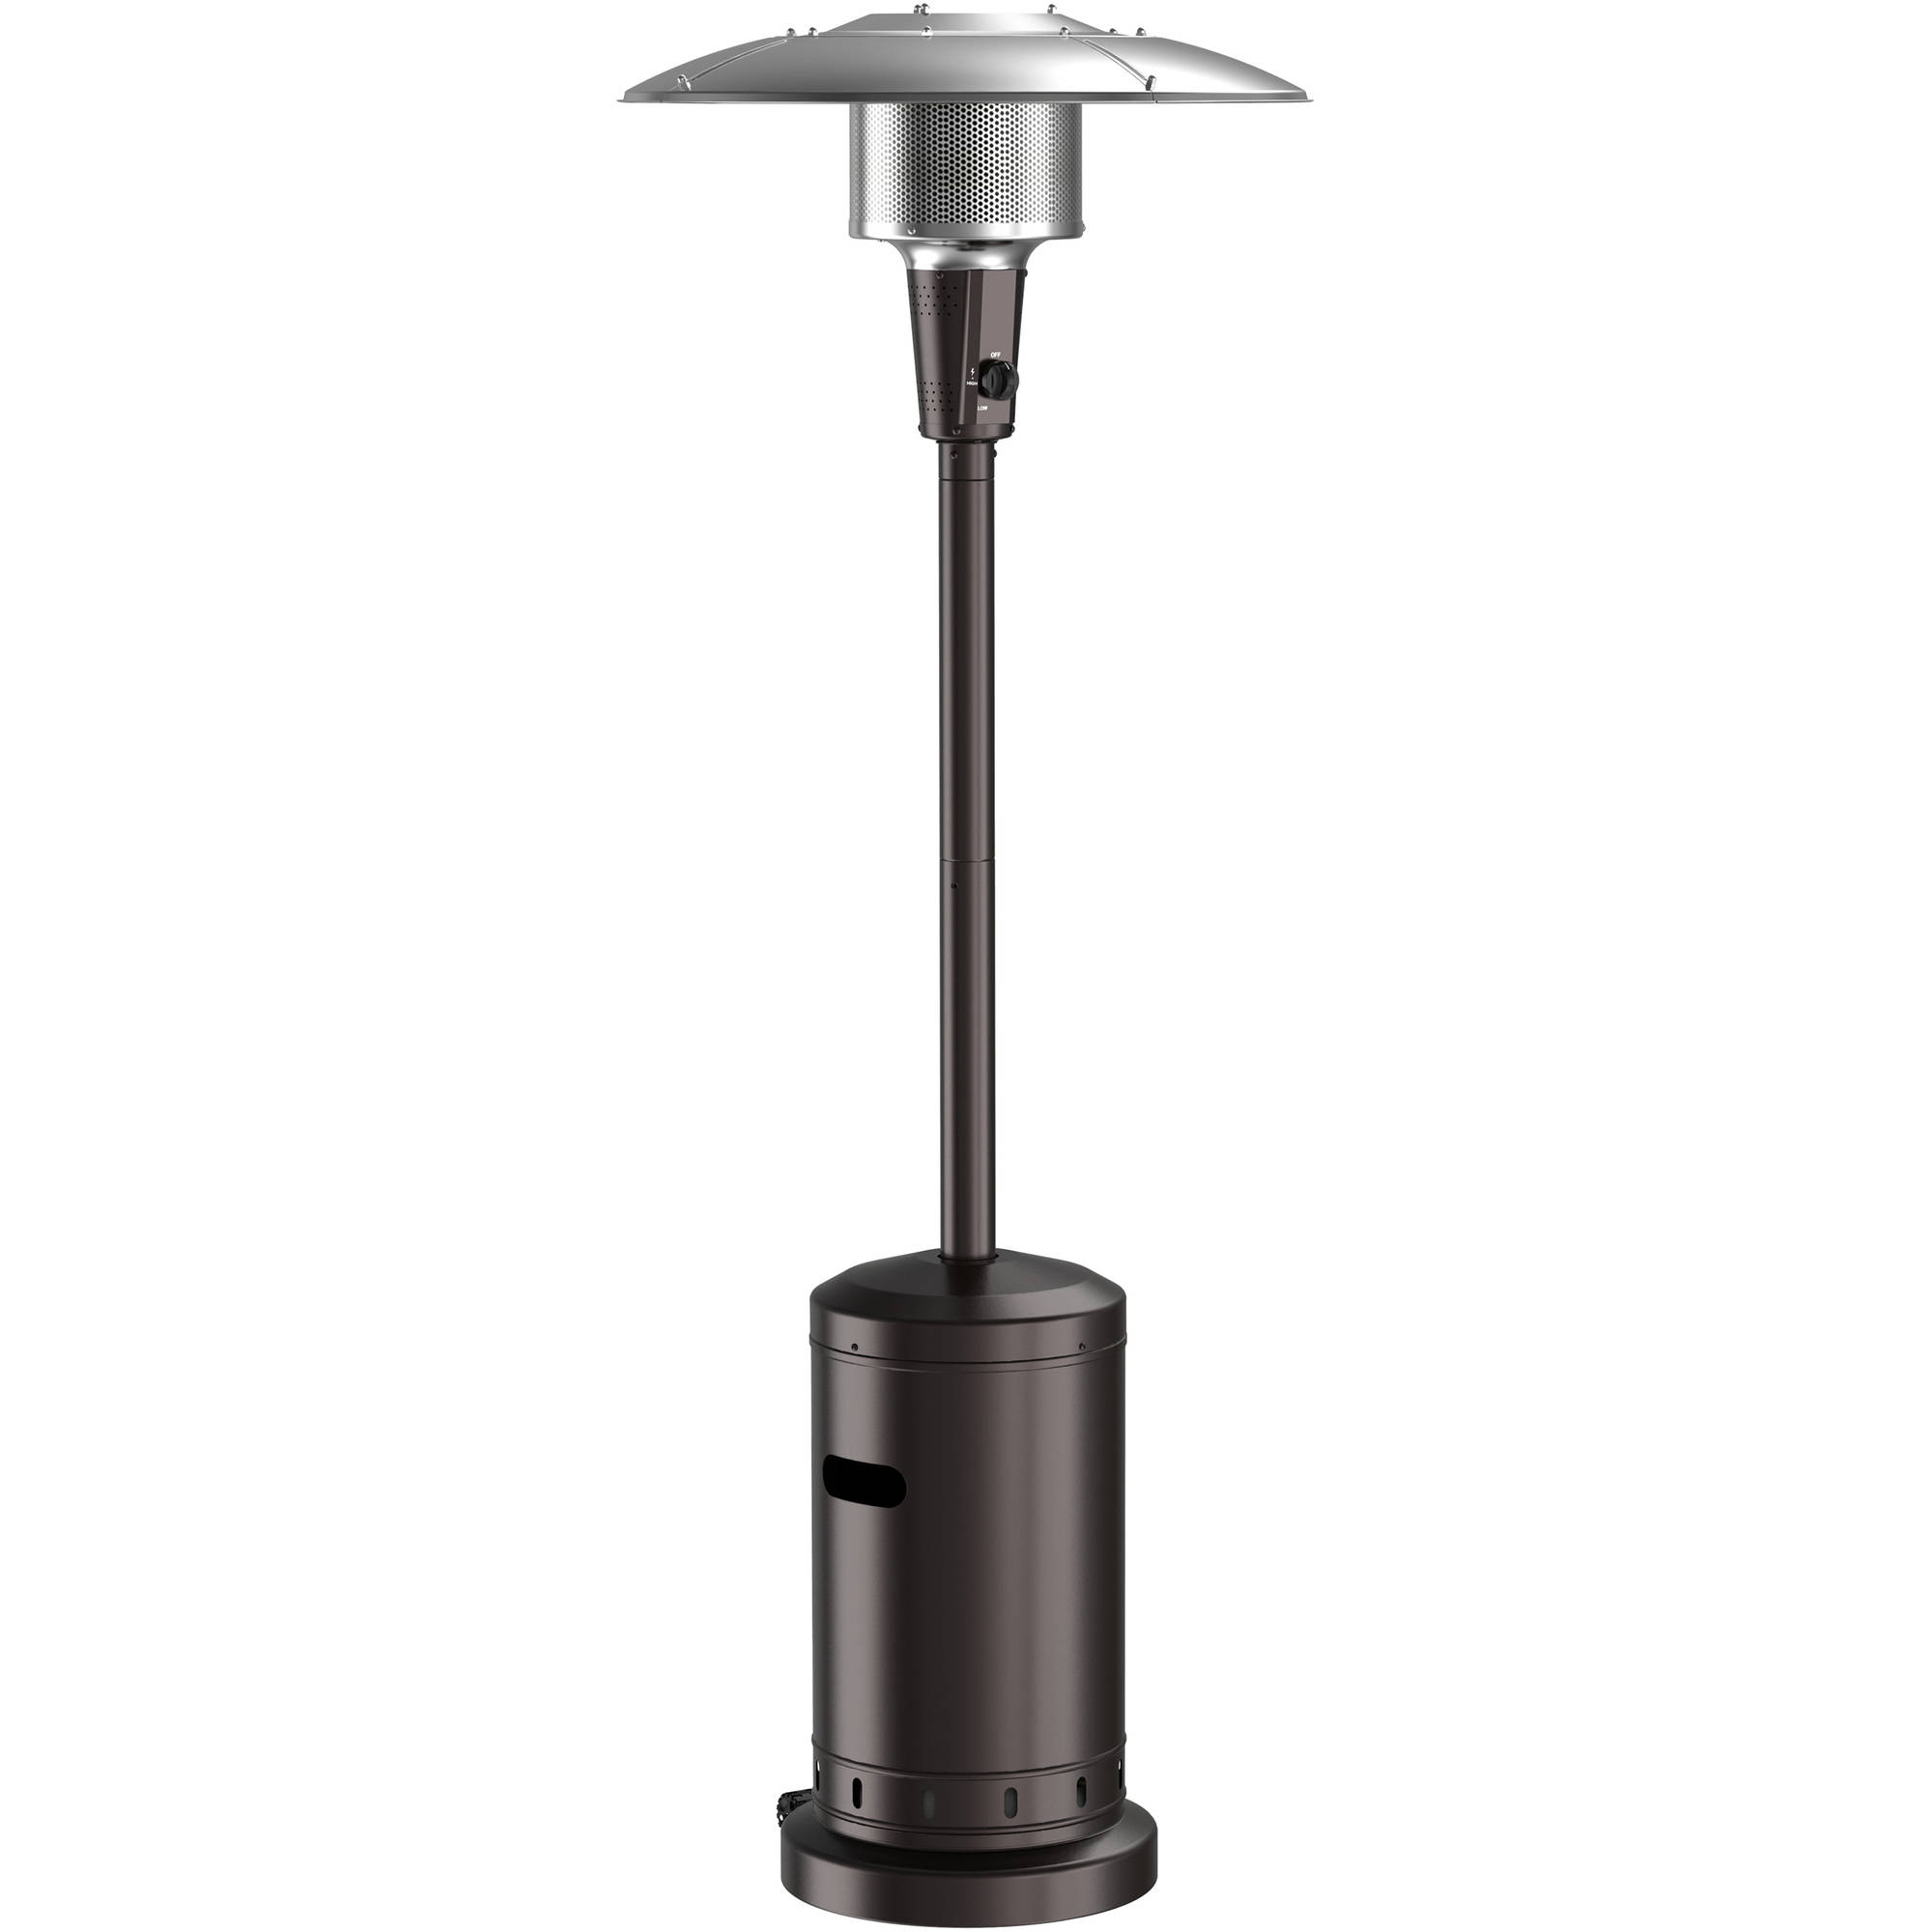 Best Patio Heater 2020